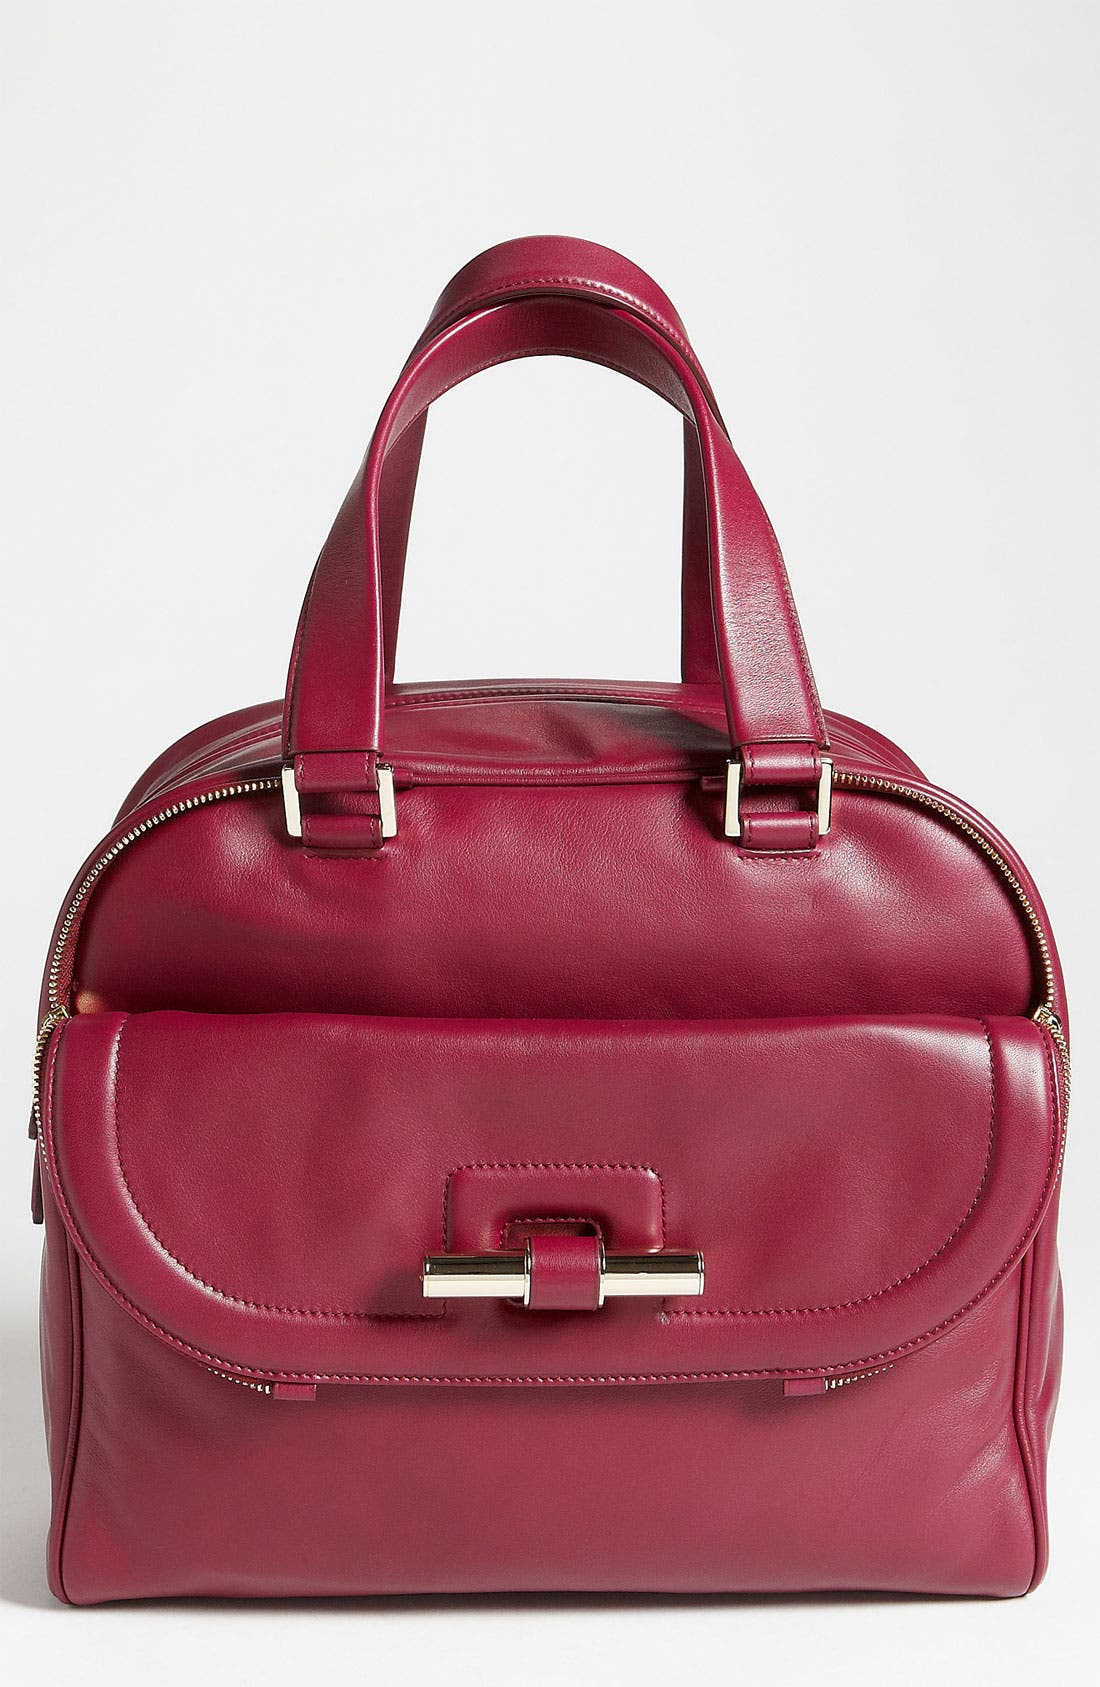 Main Image - Jimmy Choo 'Justine - Large' Calfskin Leather Satchel